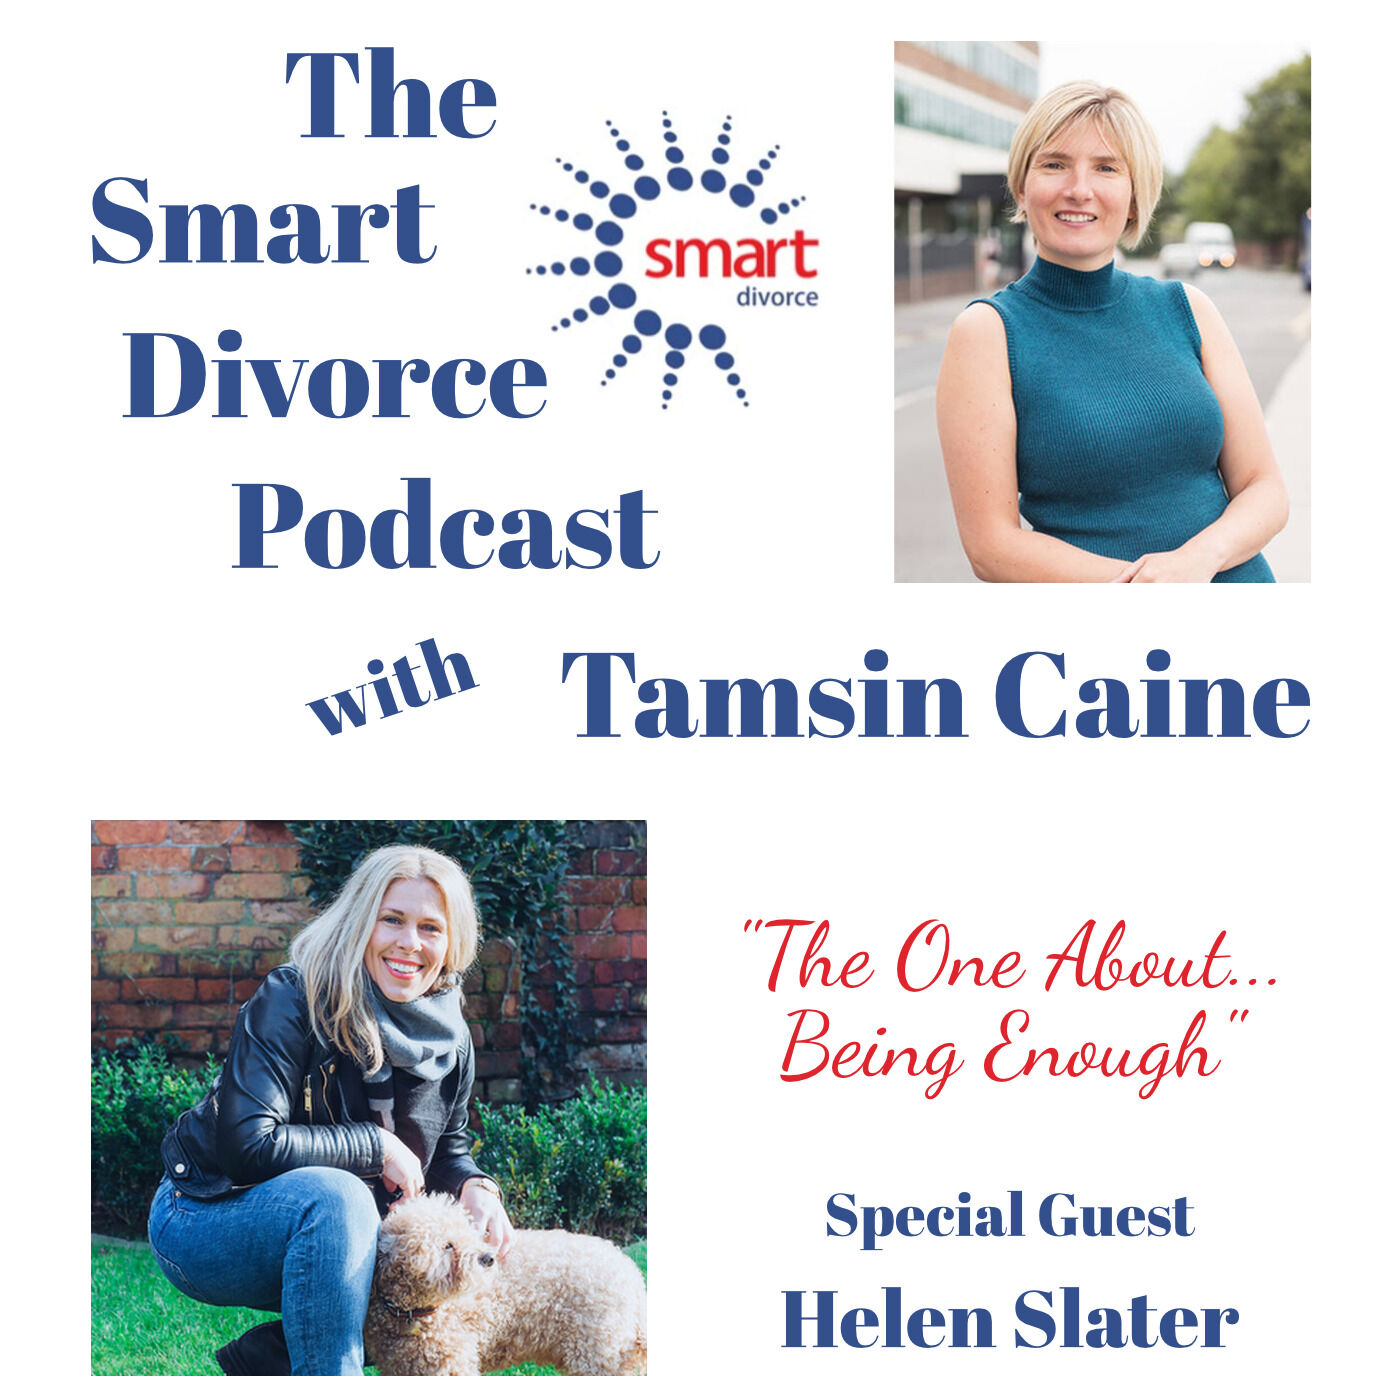 The Smart Divorce Podcast - The One About... Being Enough